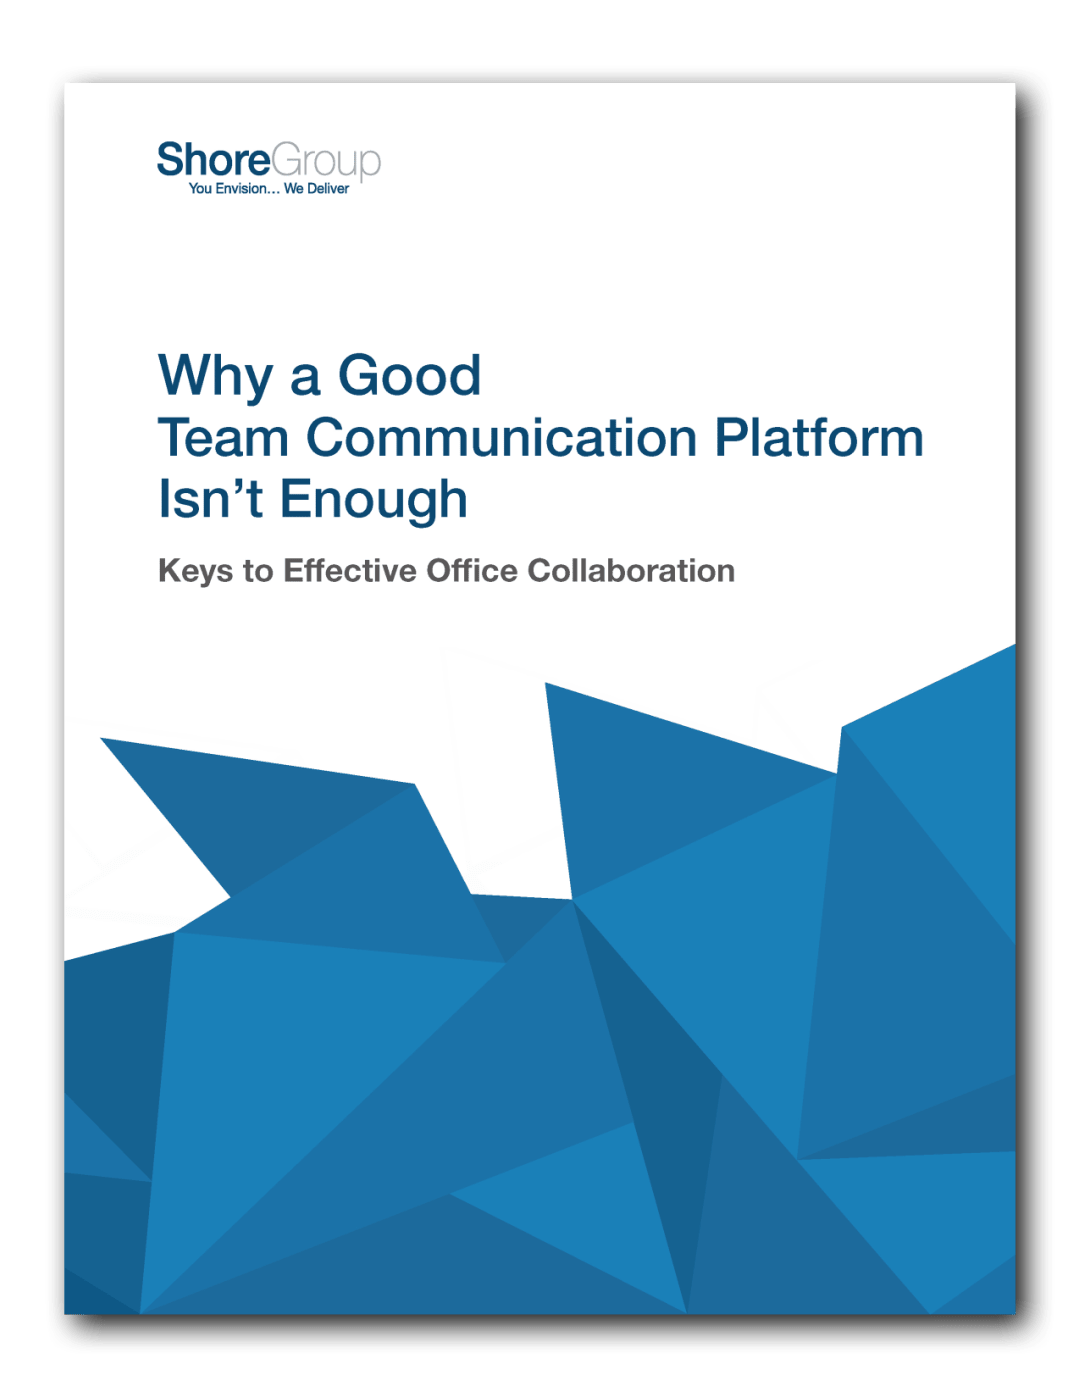 Why a Good Team Communication Platform Isn't Enough Whitepaper ShoreGroup